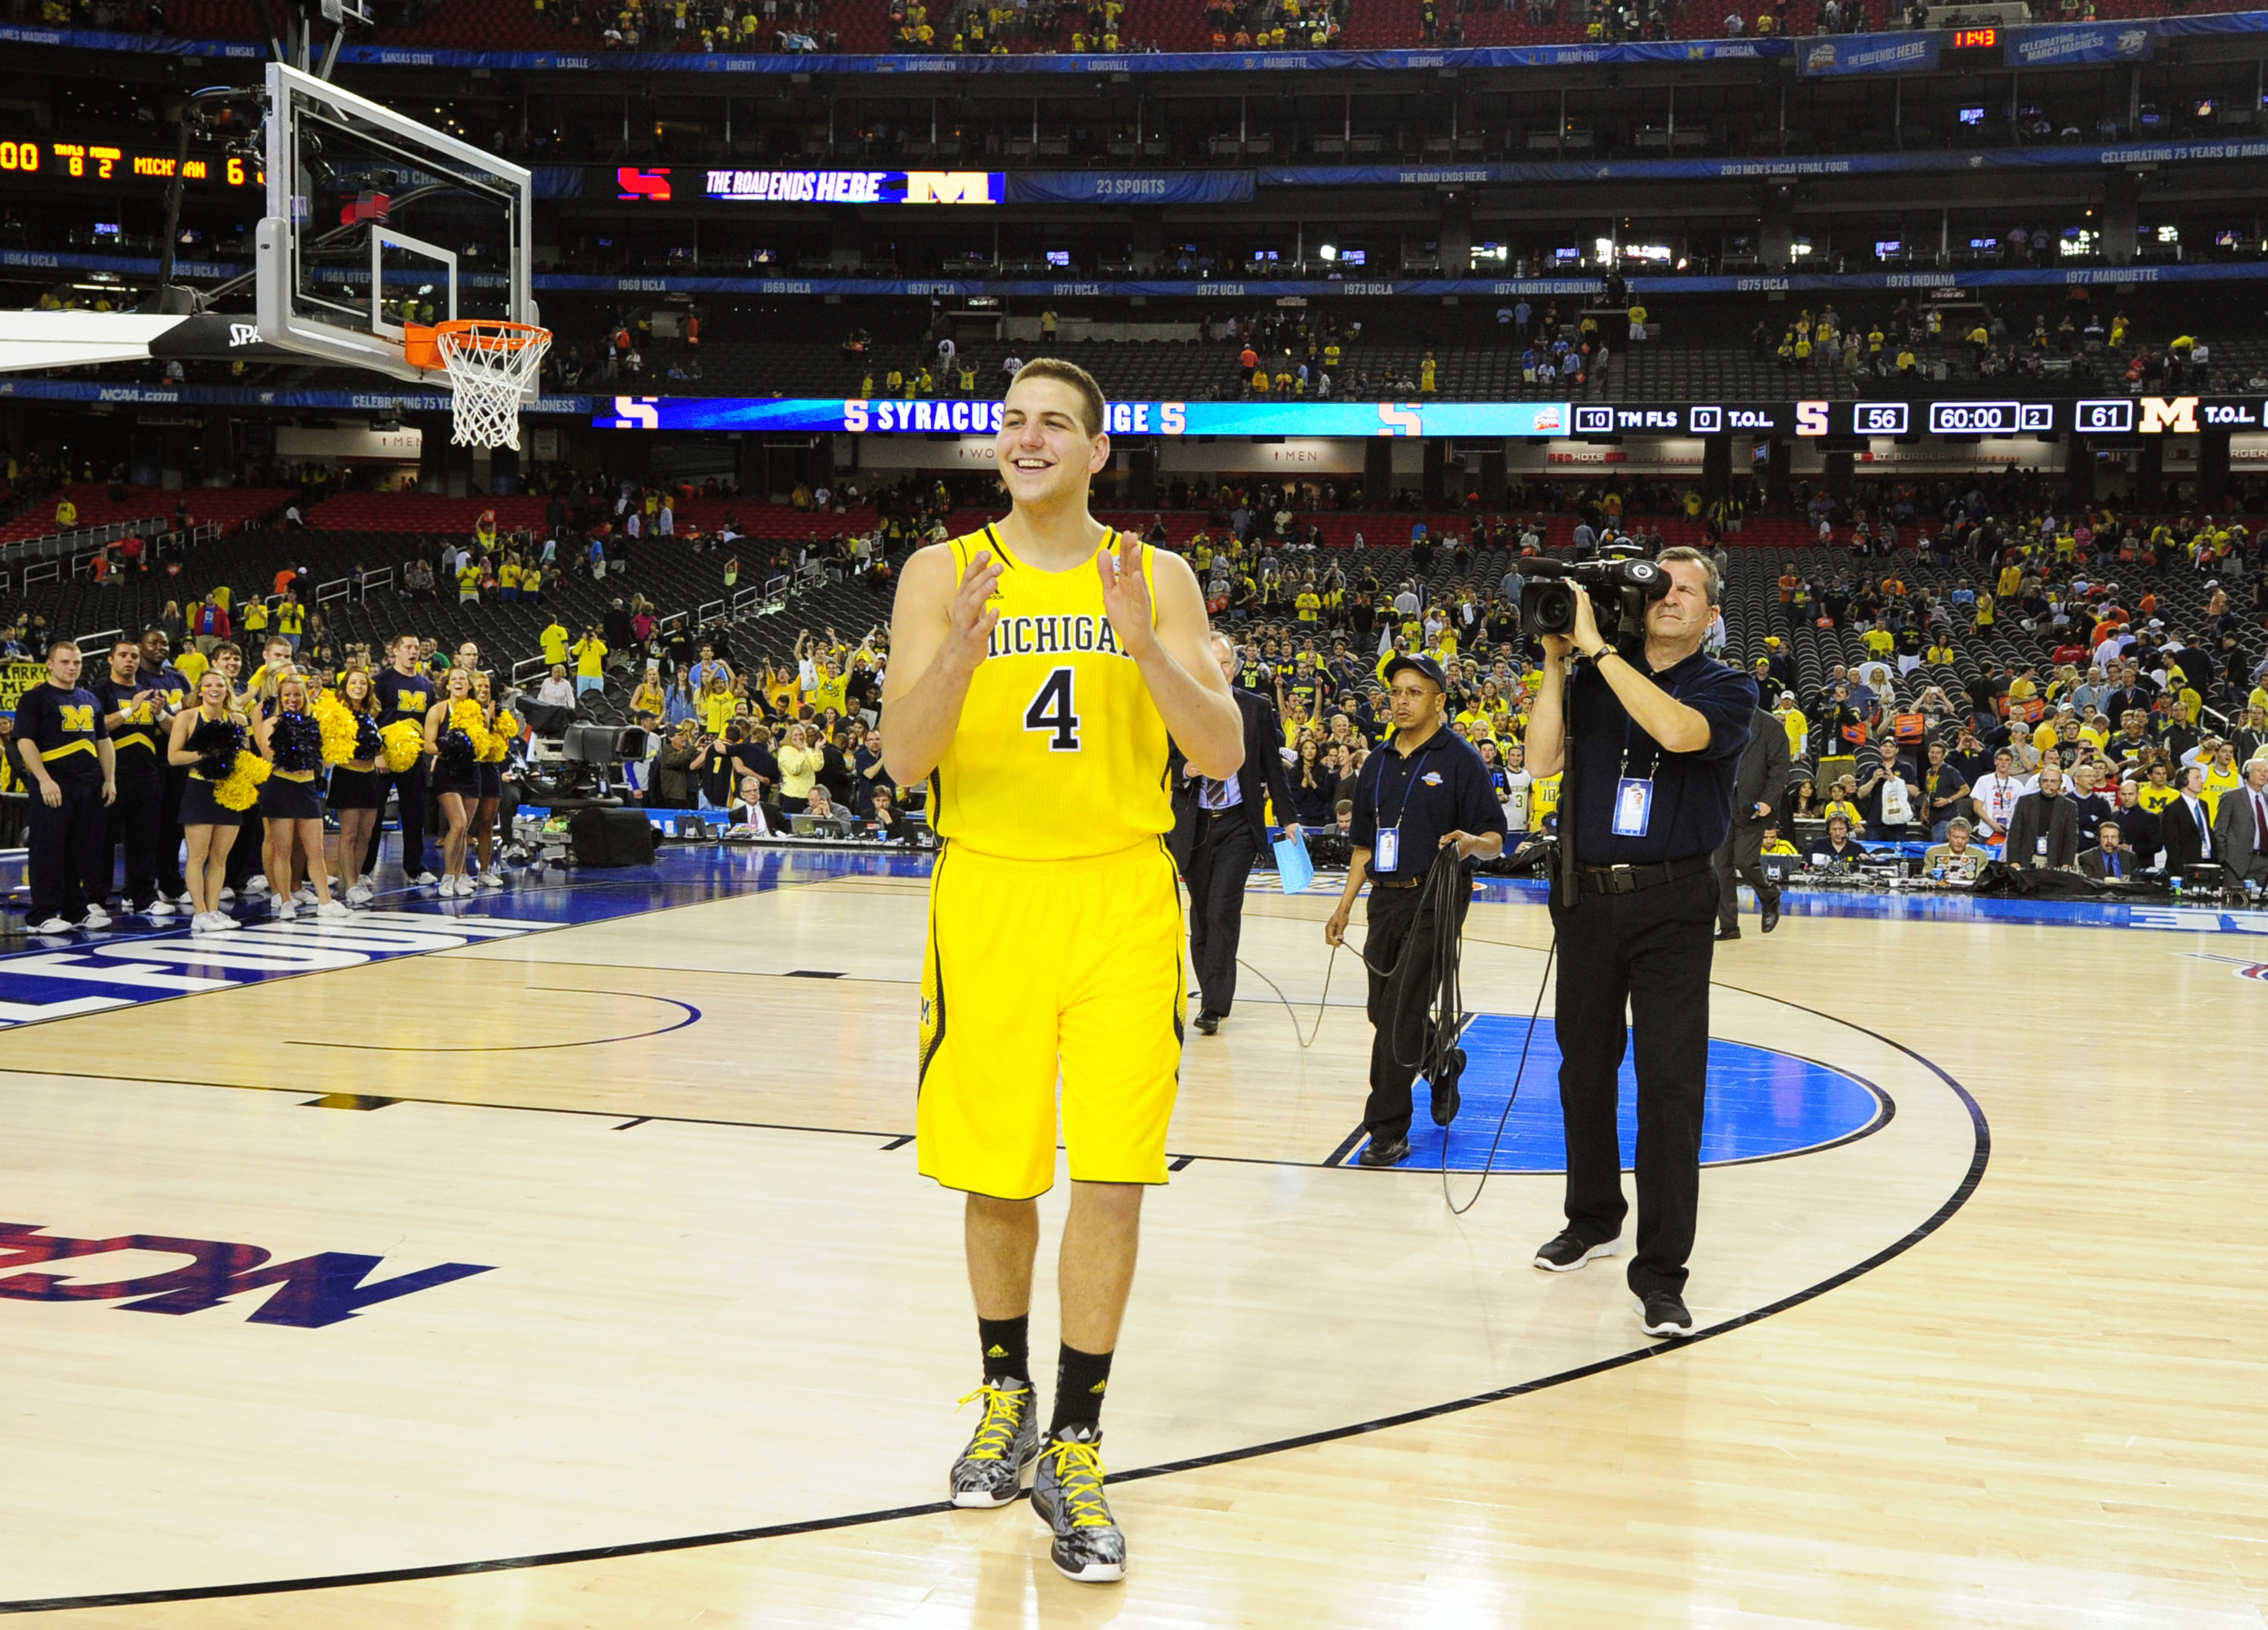 Nice to see Michigan's #4 walking off the floor at a Final Four game with a smile on his face.